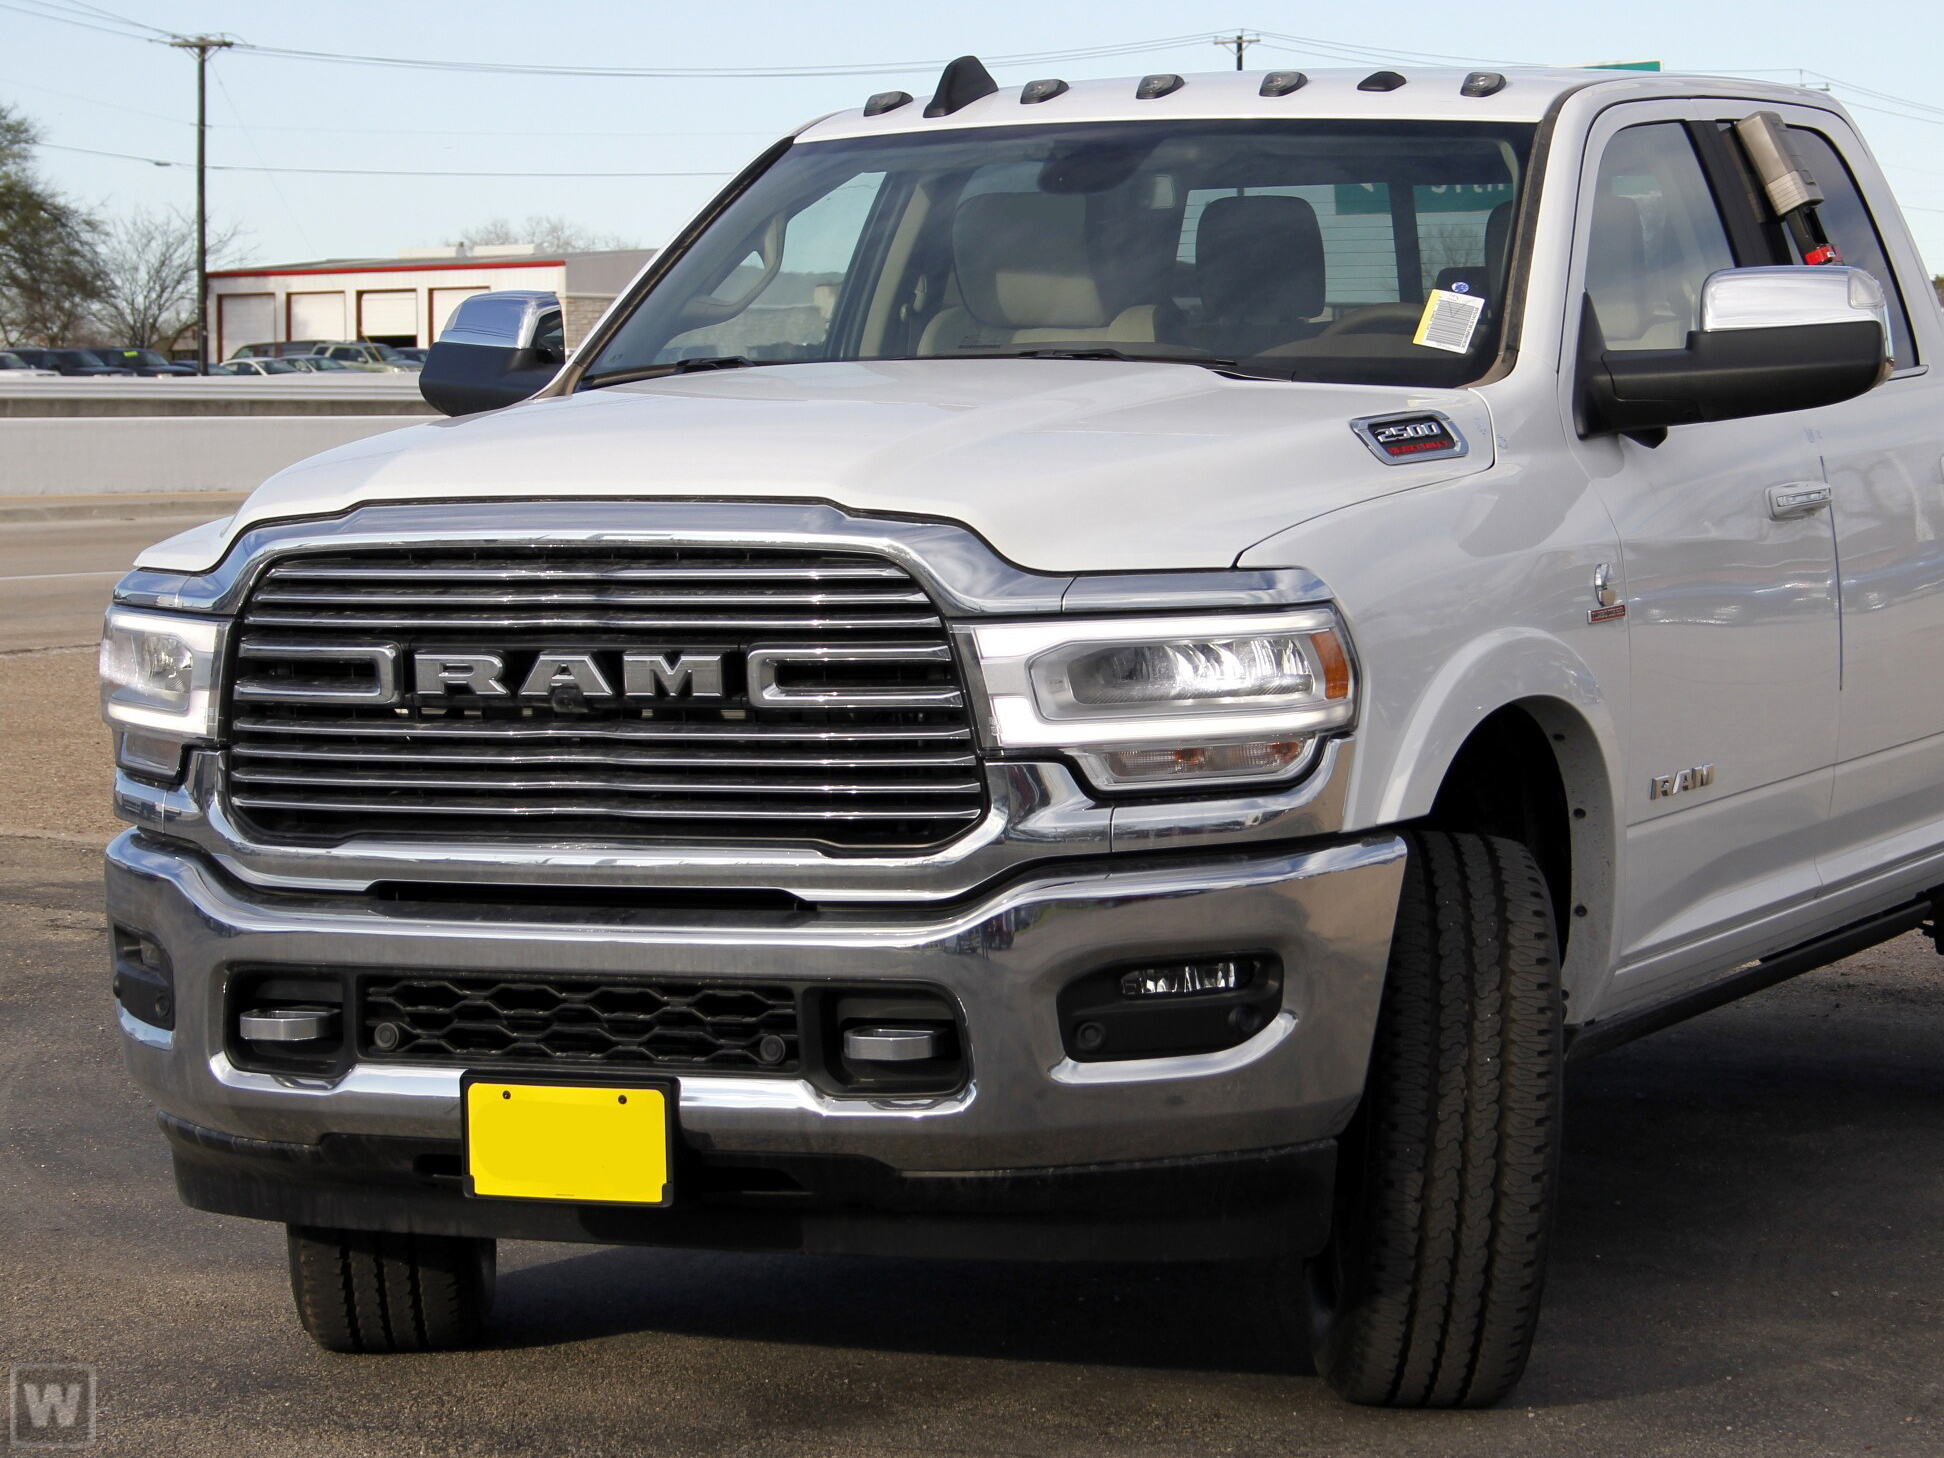 2020 Ram 2500 Crew Cab 4x4, Pickup #C20398 - photo 1